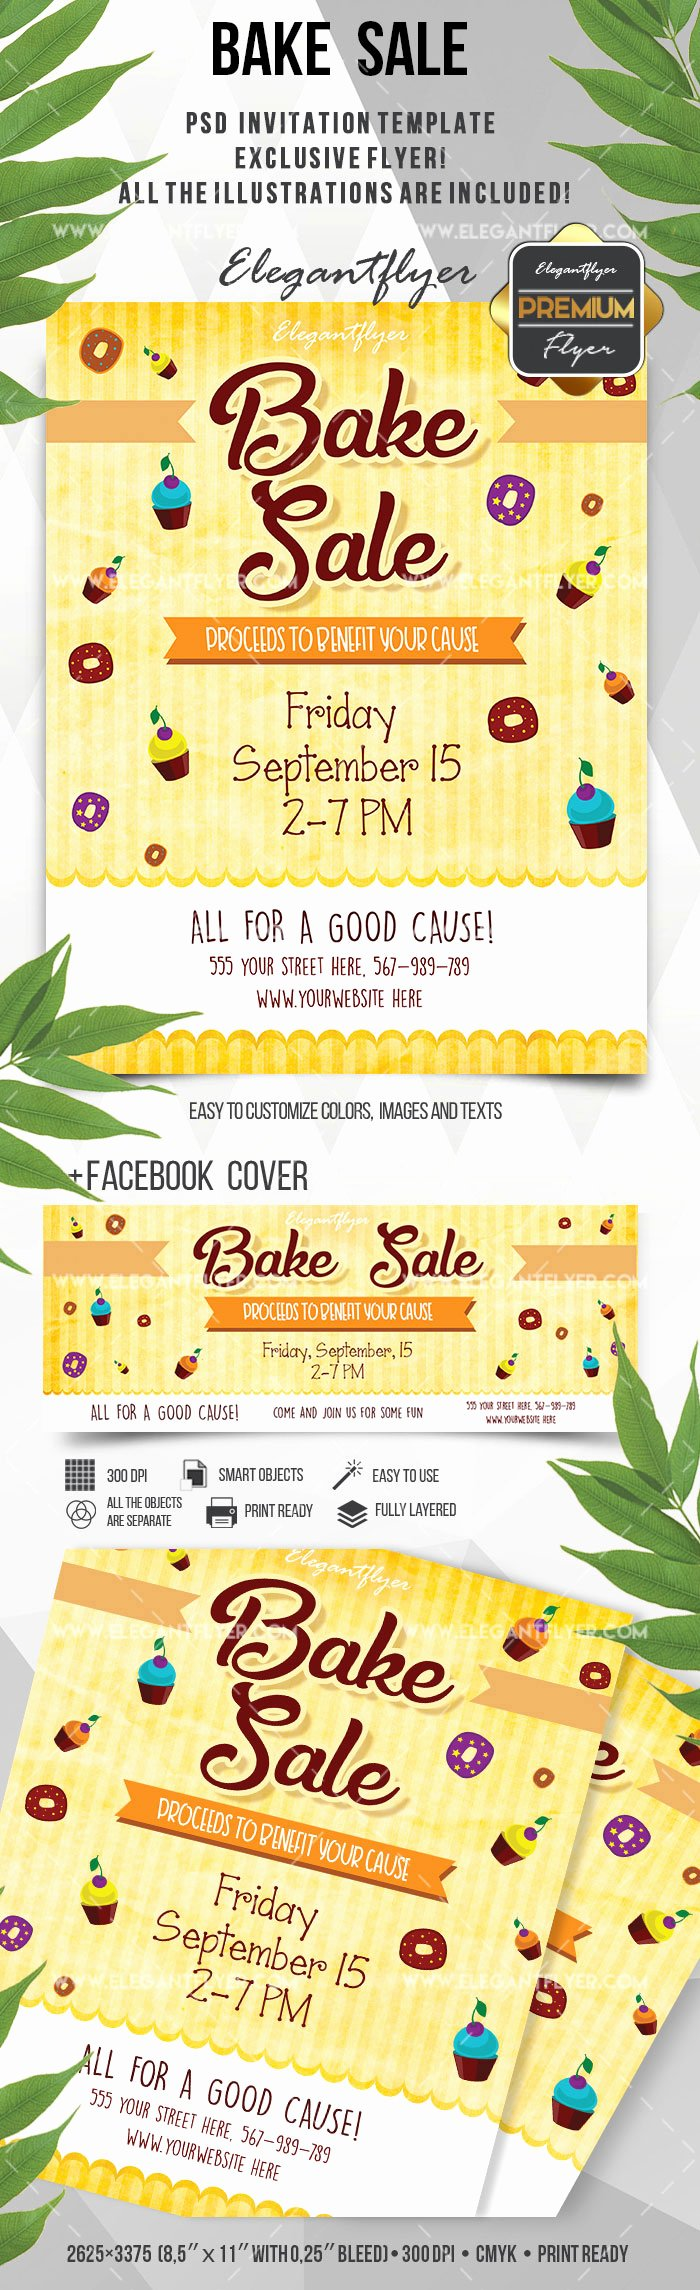 ​​bake sale flyer free invitation template